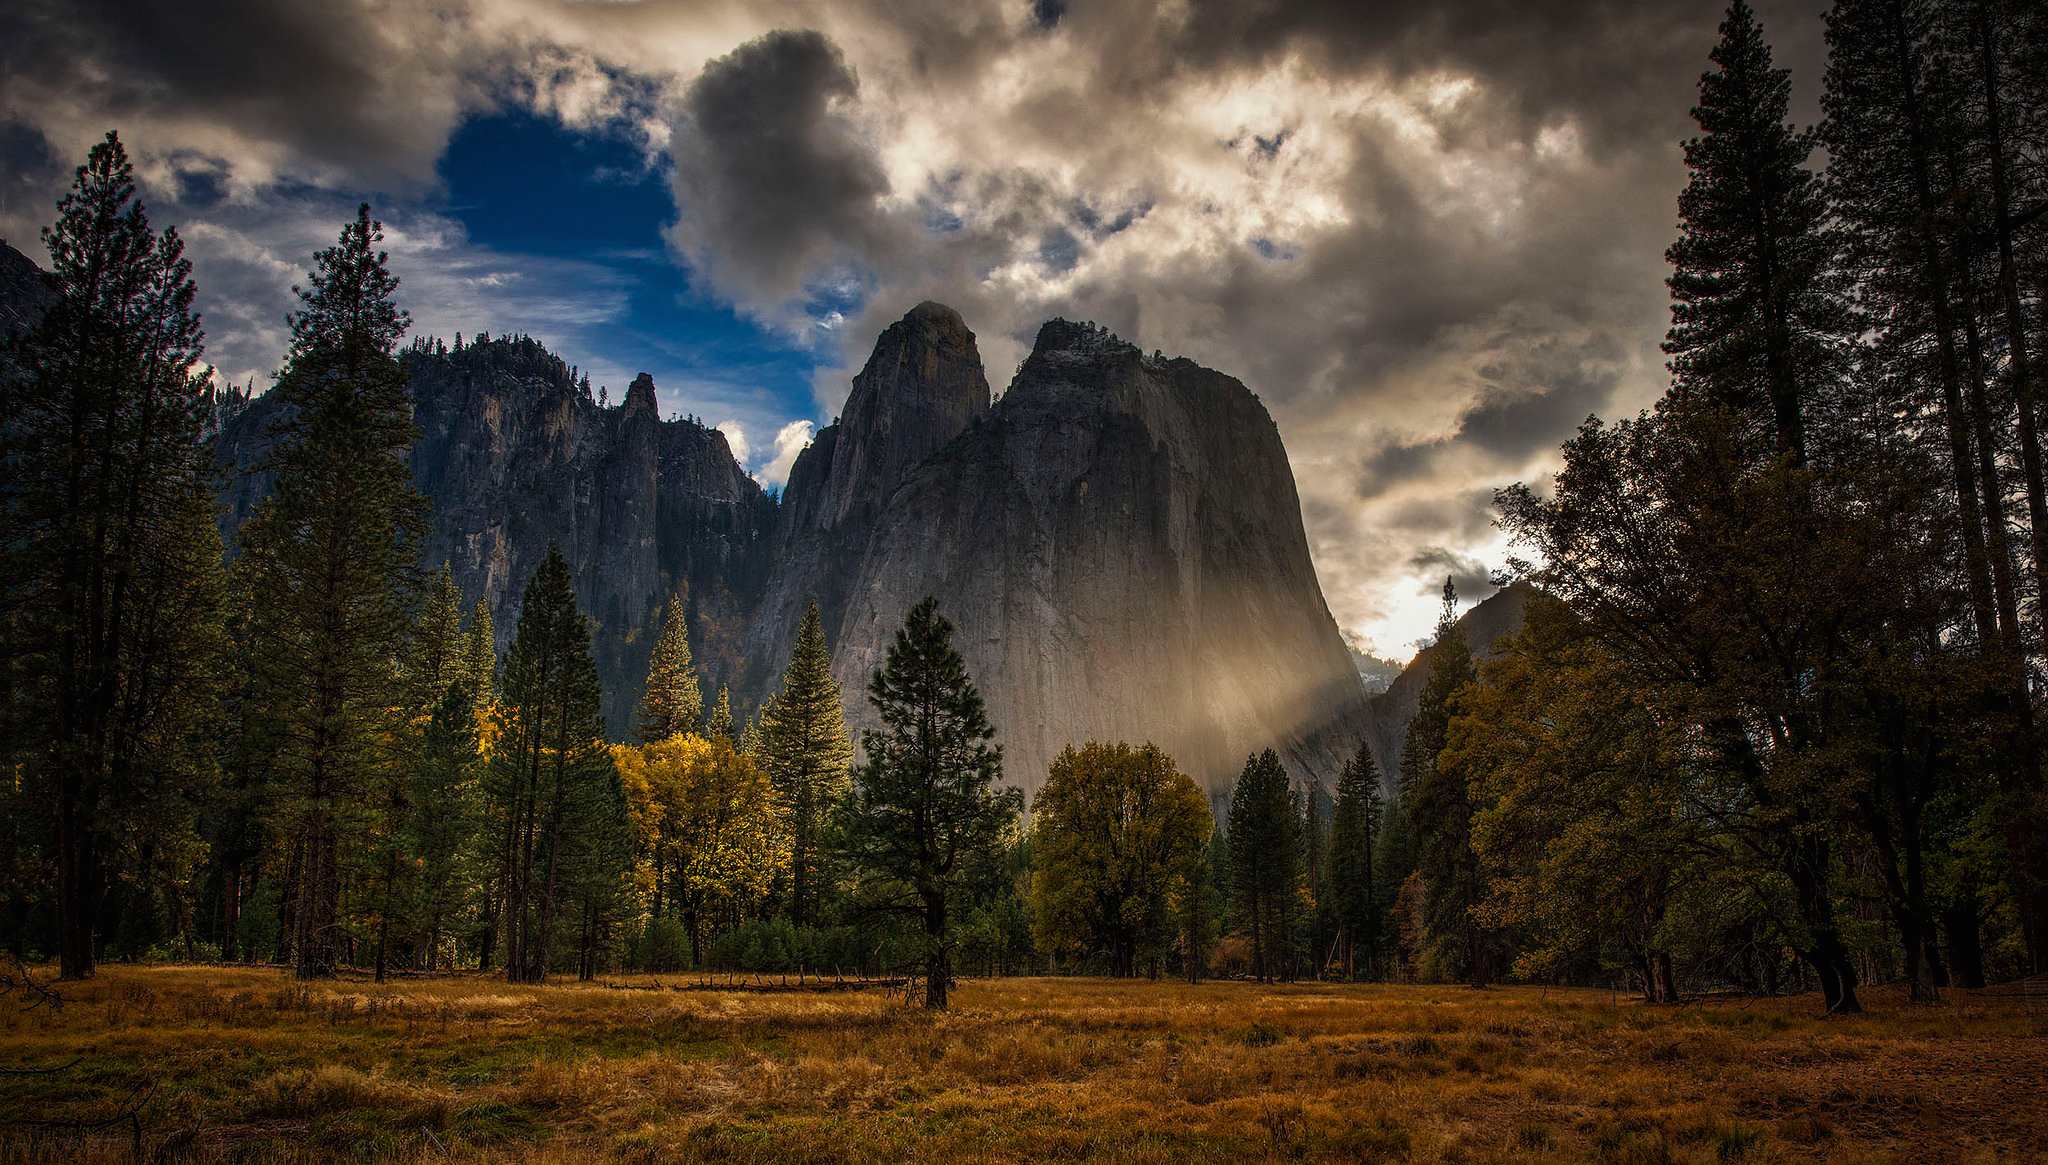 Hd wallpaper yosemite - Hd Wallpaper Background Id 699473